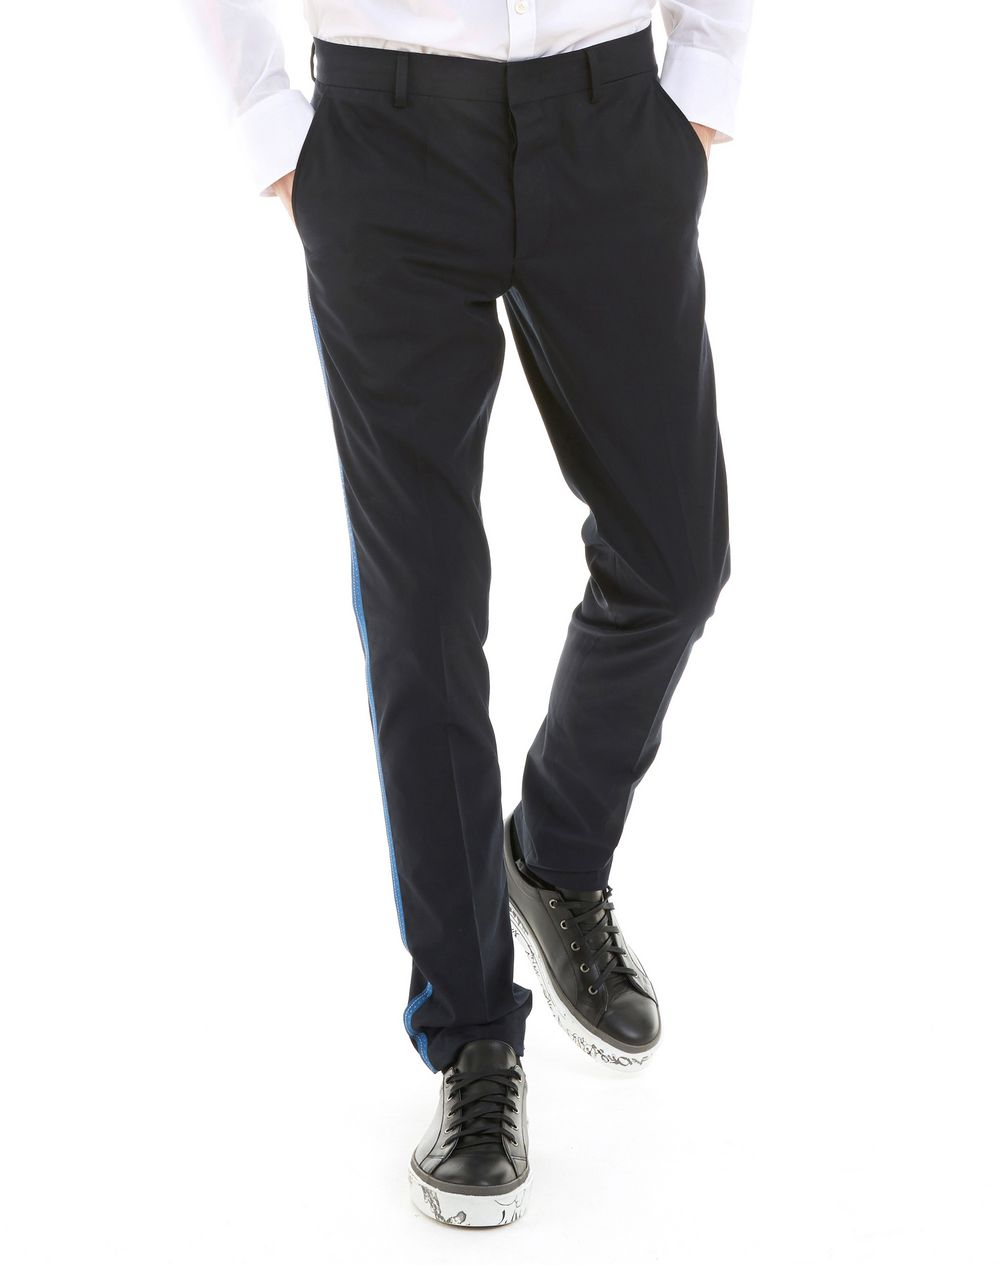 SLIM-FIT CHINO PANTS WITH STITCHED RIBBON - Lanvin